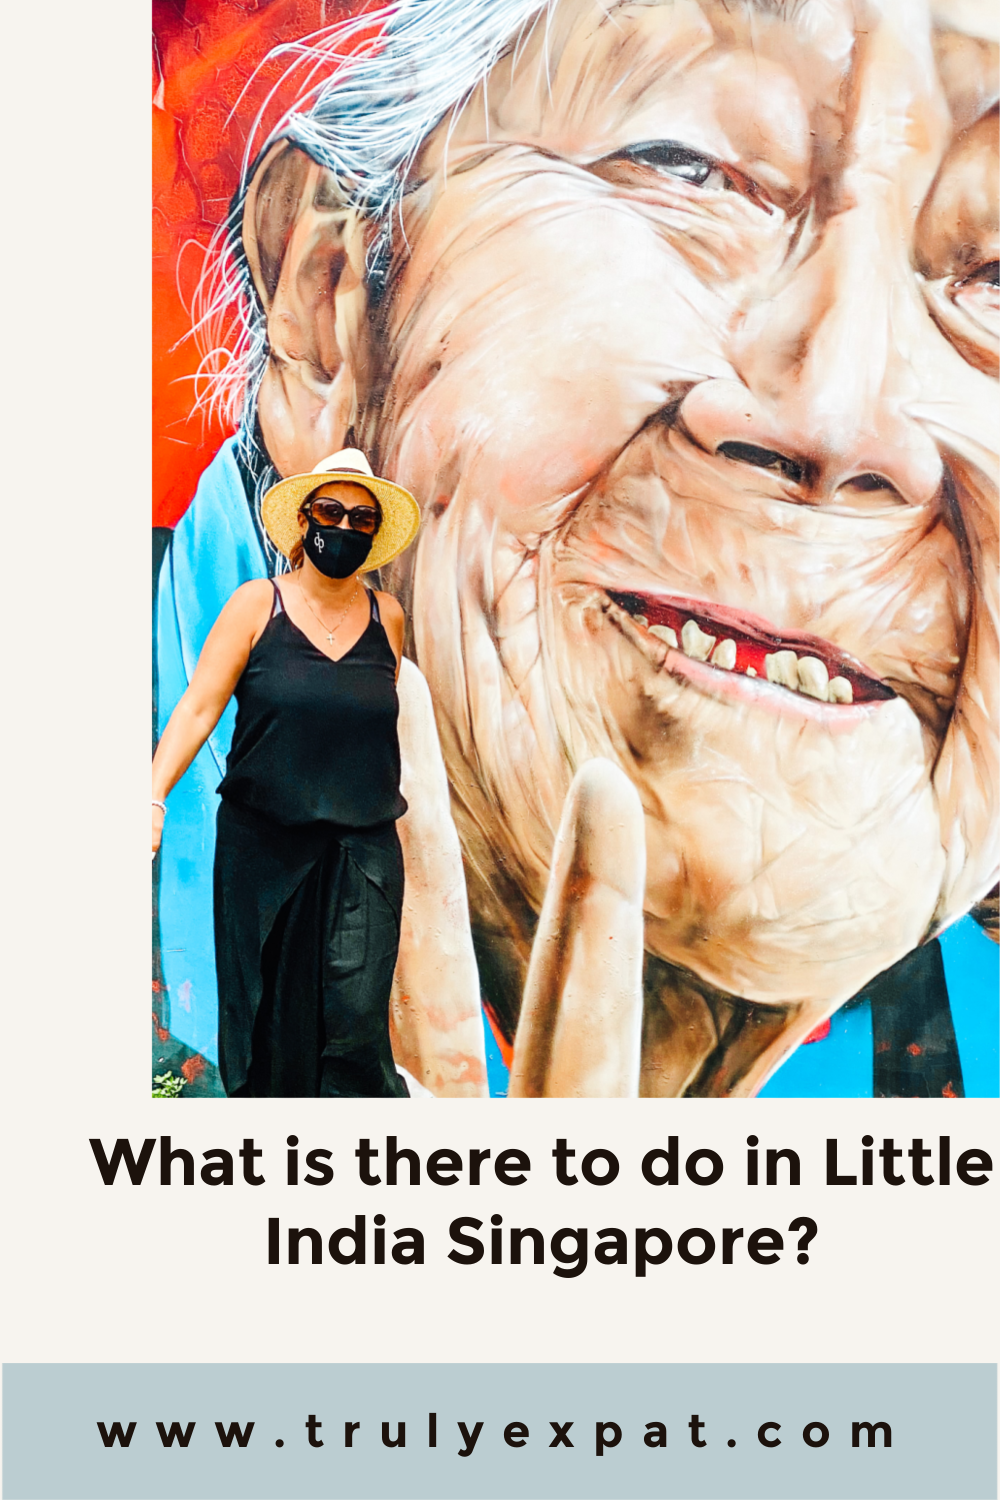 What is there to do in Little India Singapore?